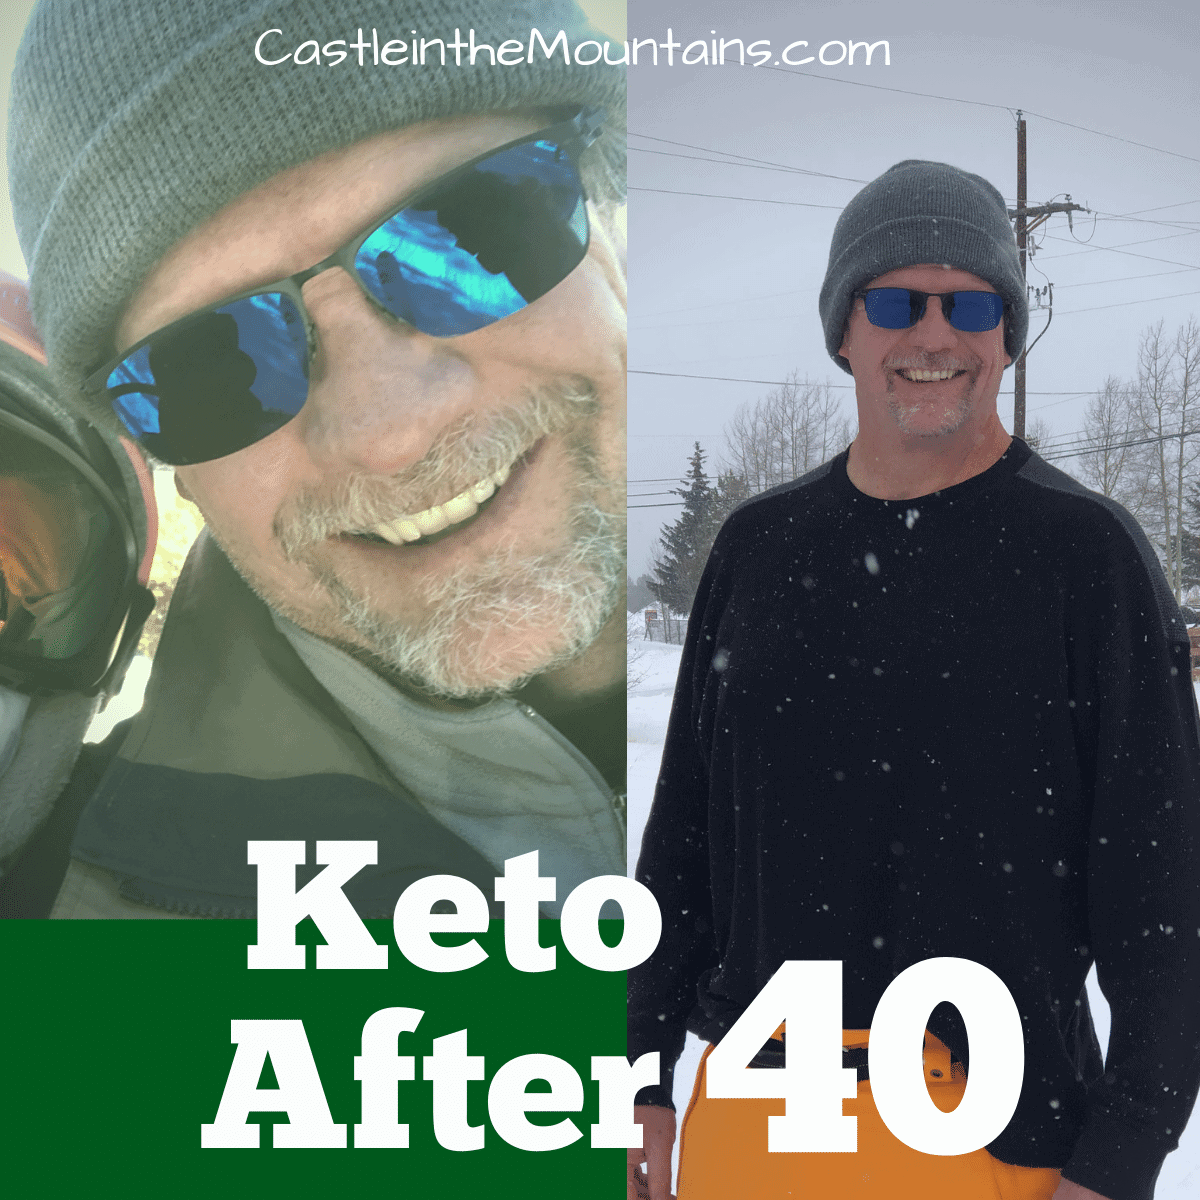 How to be successful with Keto over 40